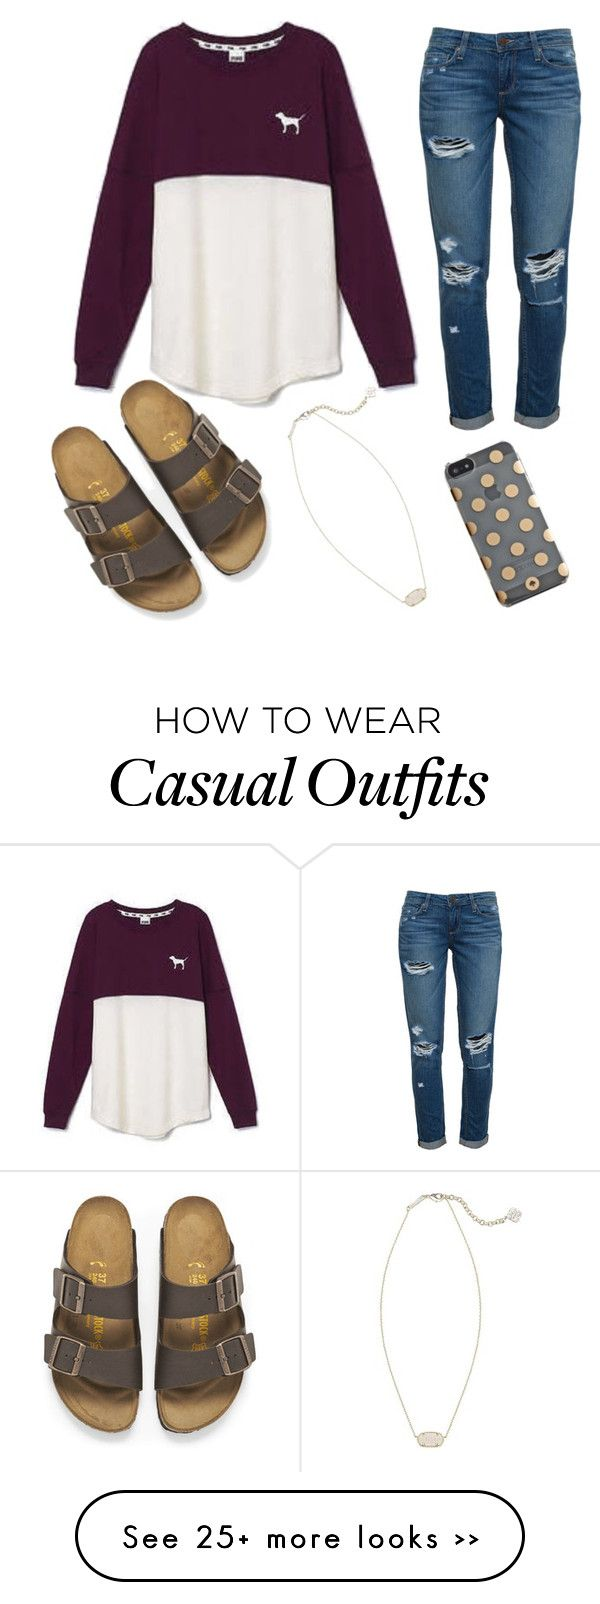 """casual day"" by jayfrancis on Polyvore featuring Victoria's Secret, Paige Denim, Birkenstock, Kendra Scott and Kate Spade"